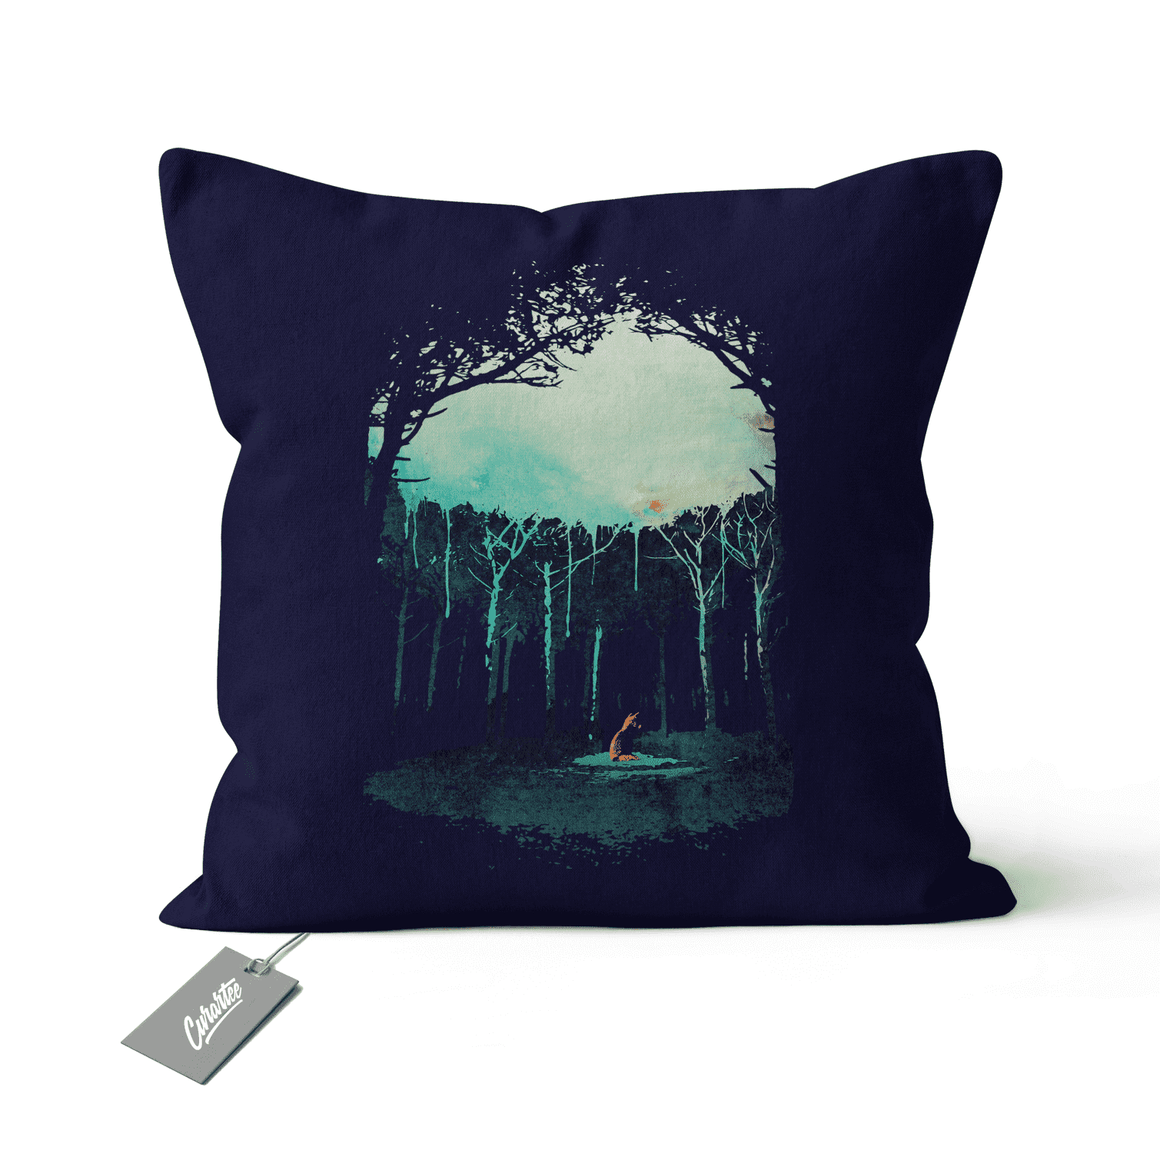 Deep In The Forest Cushion